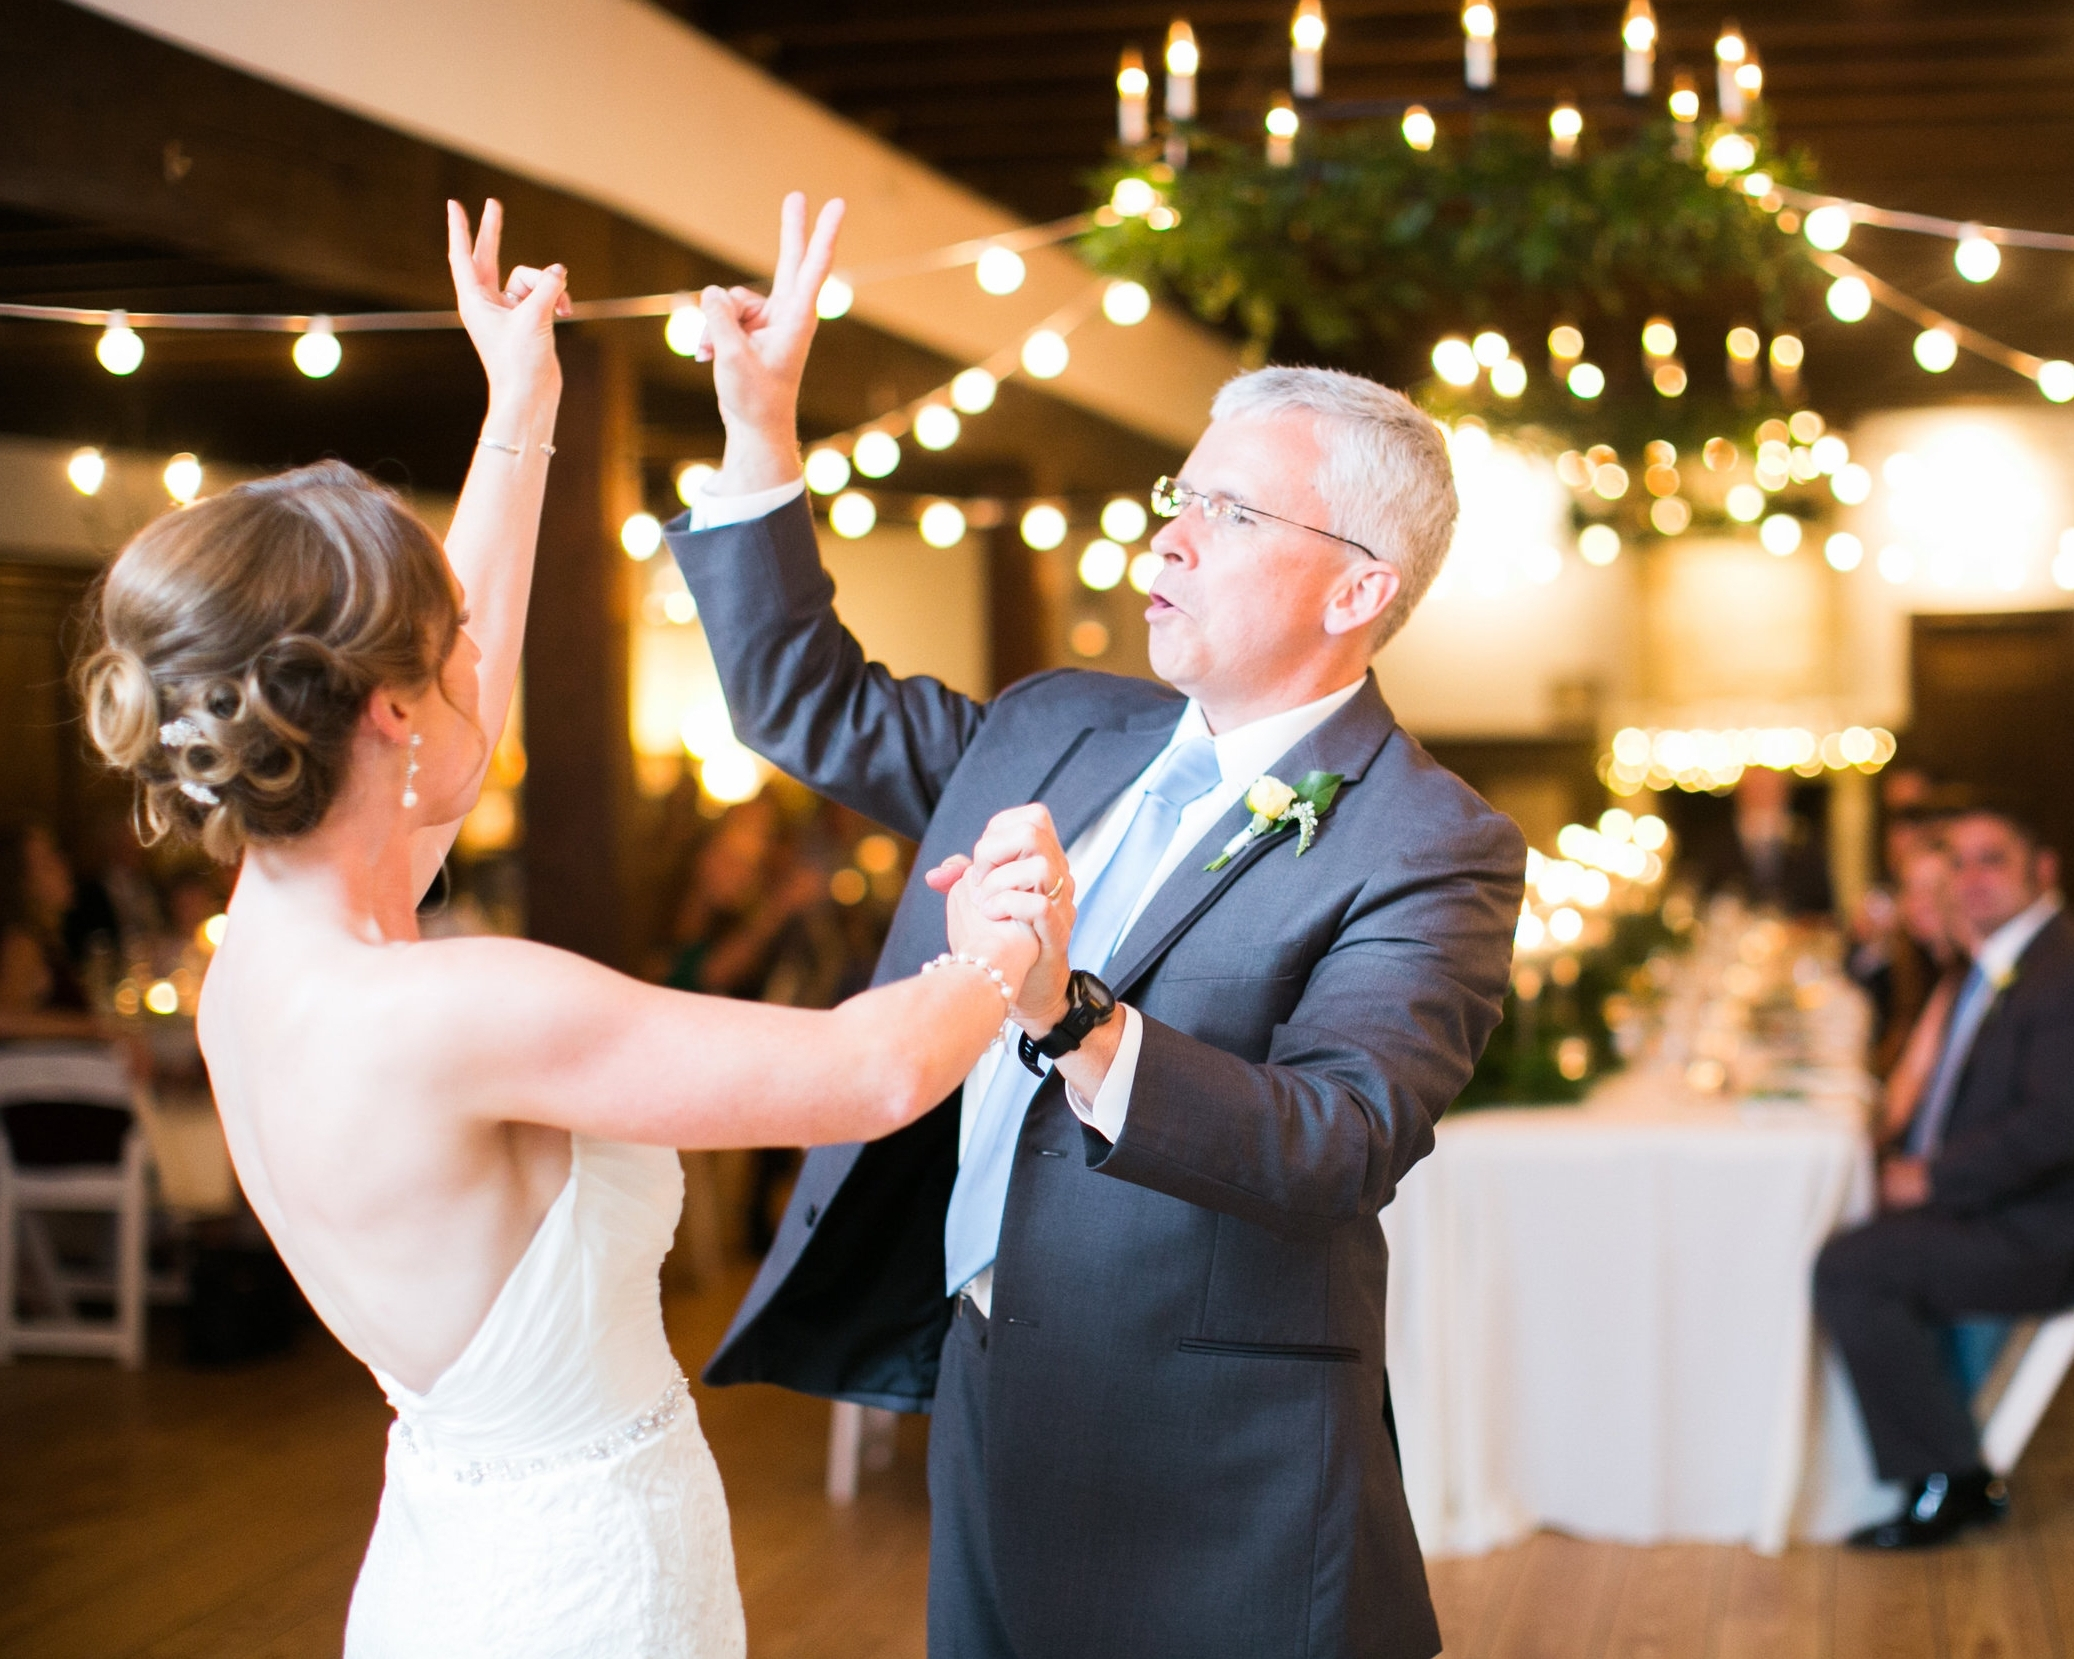 """The best Father/ Daughter dance ev-ver (2016)   Jess + Andrew's wedding was so classically beautiful. They had great taste, tackled almost everything together, and had a fantastic wedding. I'll never forget when the music Screeched and the Father/ Daughter danced turned into a waltz of """"Take Me Out To The Ball Game."""" A little something unexpected in the most elegant way possible!"""